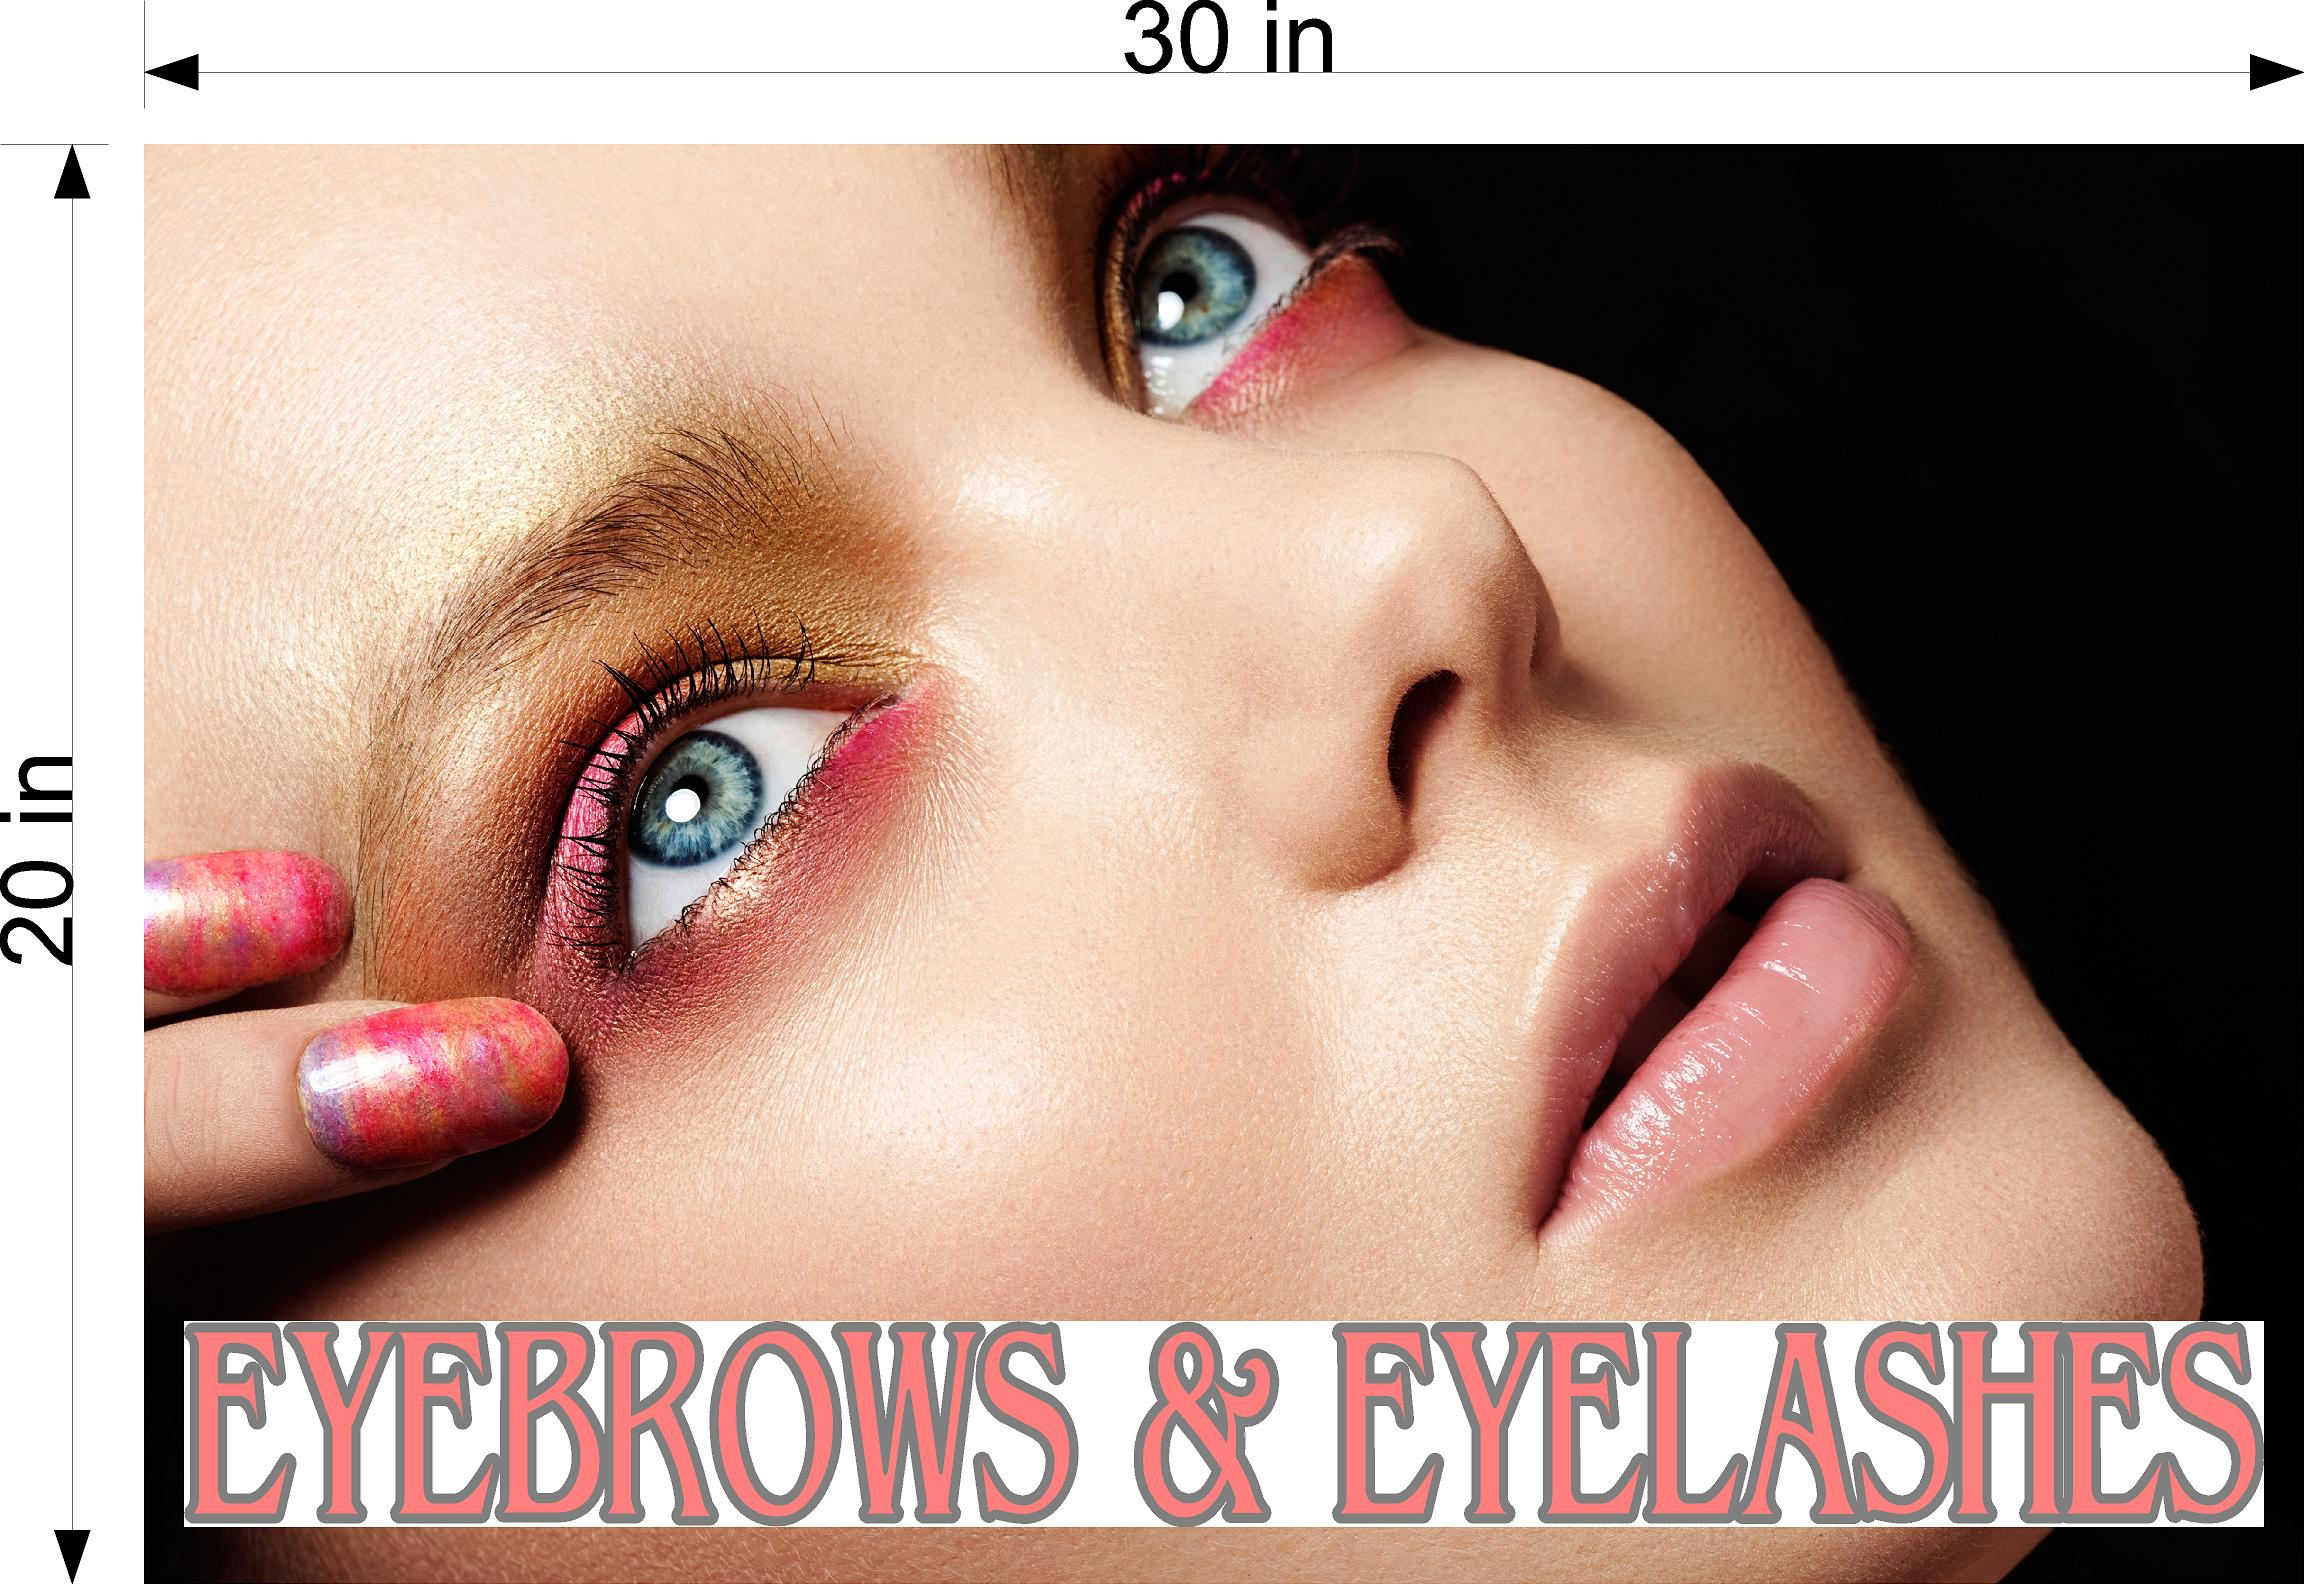 Eyebrows 13 Wallpaper Poster Decal with Adhesive Backing Wall Sticker Decor Indoors Interior Sign Eyelashes Horizontal